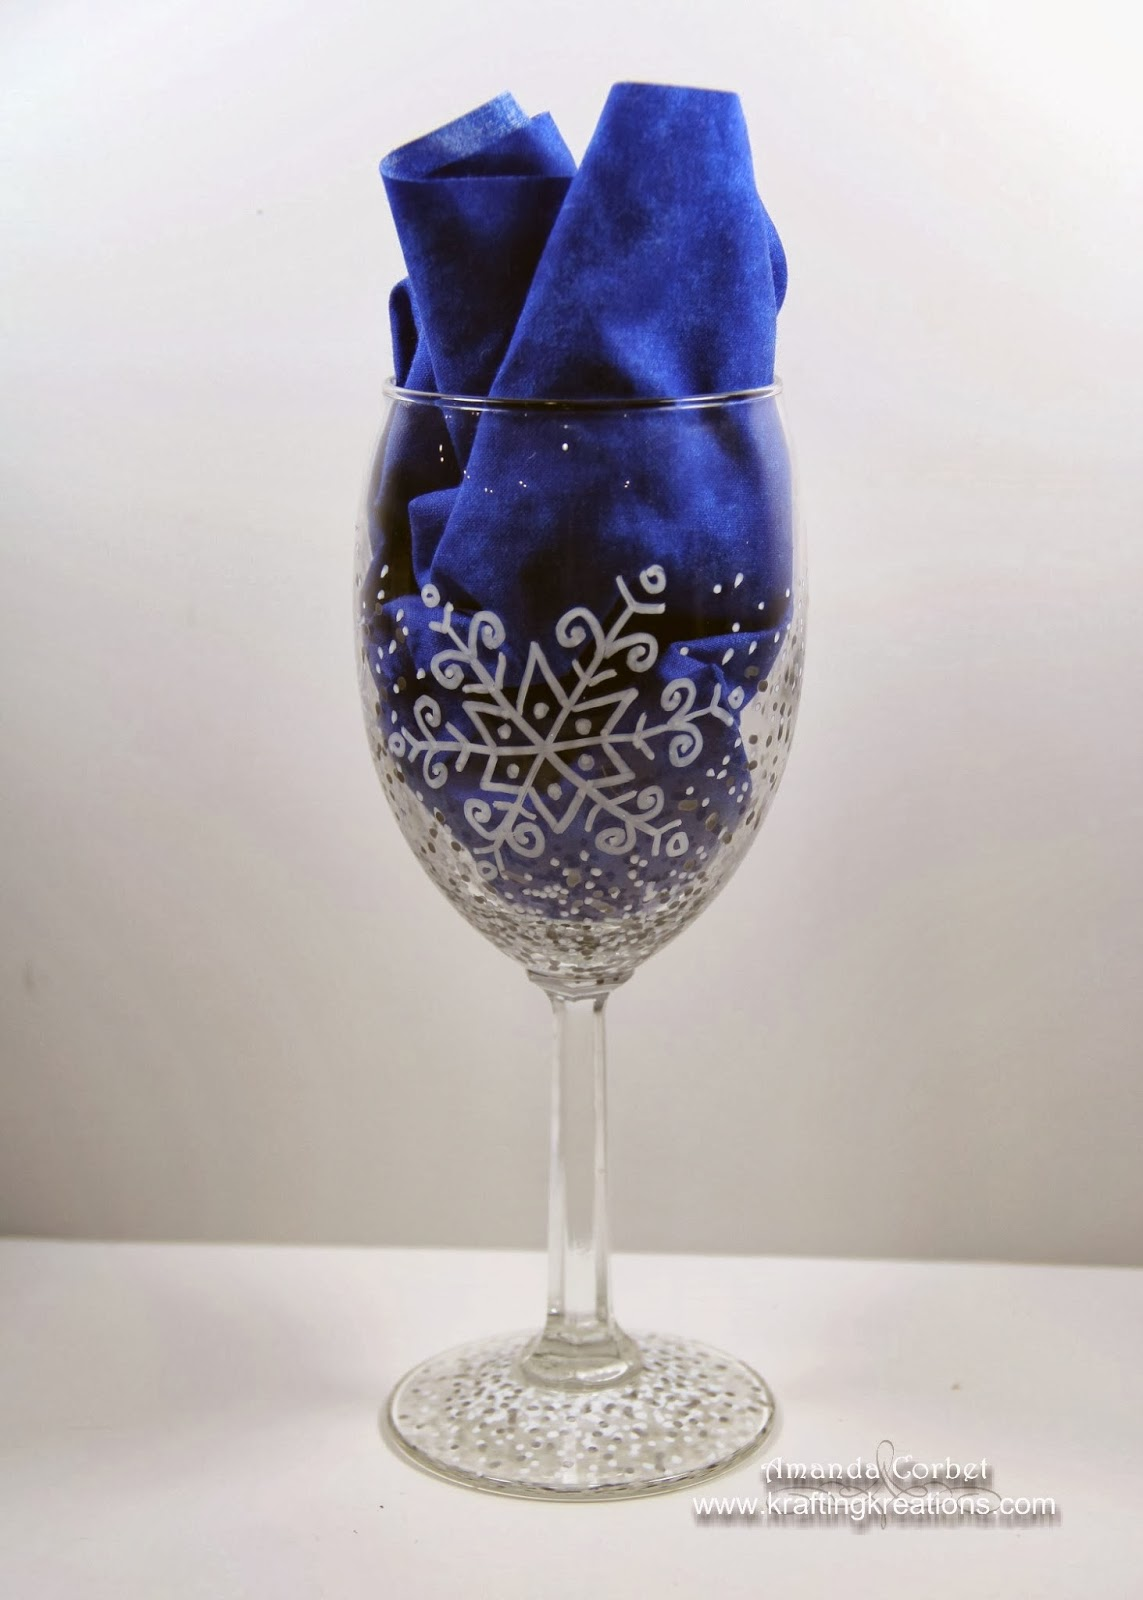 Krafting kreations diy snowflake wine glasses for Diy painted wine glasses